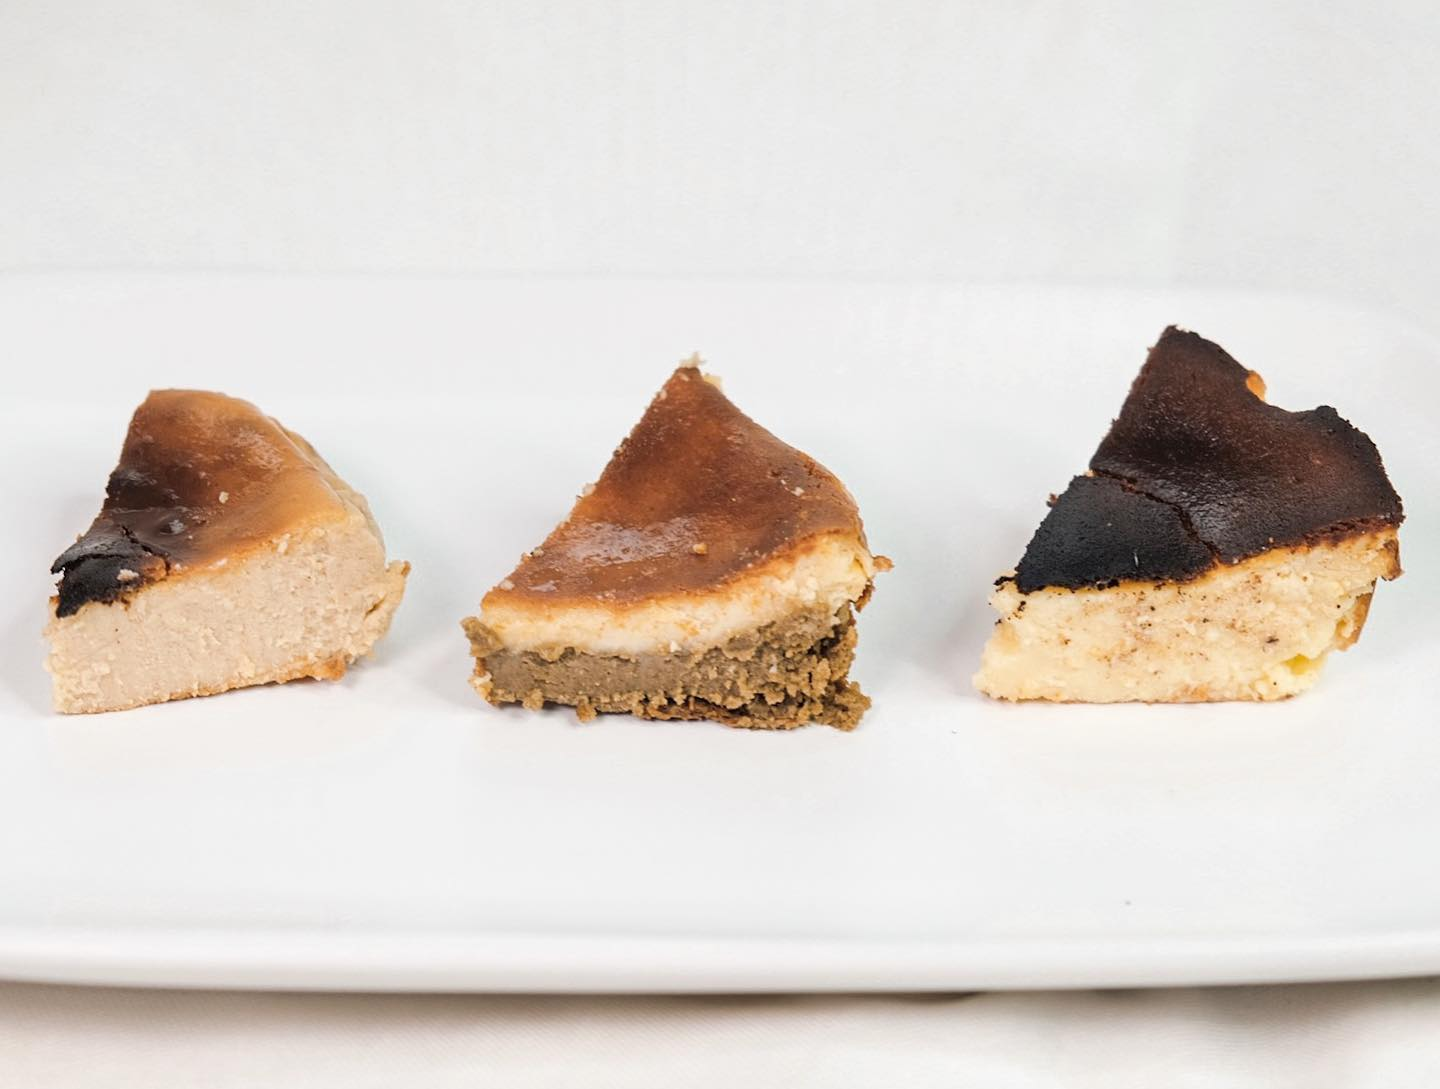 Here Are More Basque Burnt Cheesecake Flavors To Try!